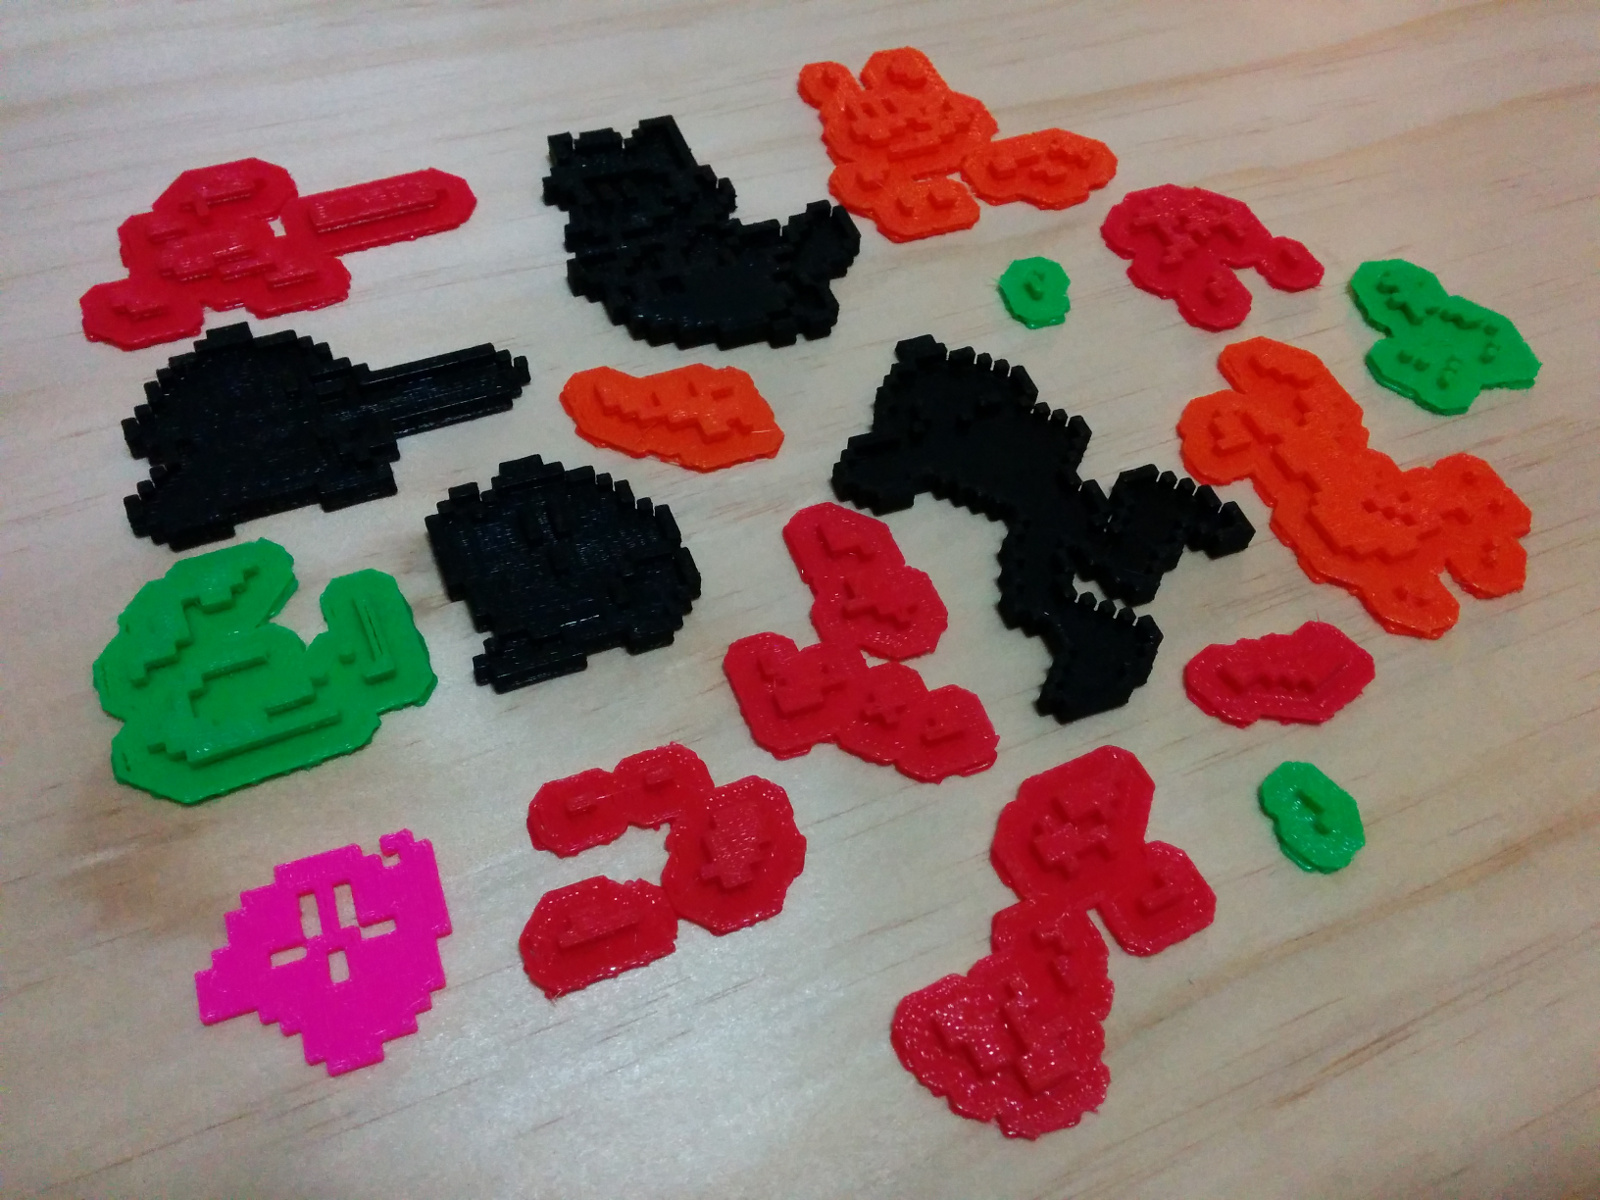 Random Project Lab: 3D Printed Nintendo Christmas Tree Decorations